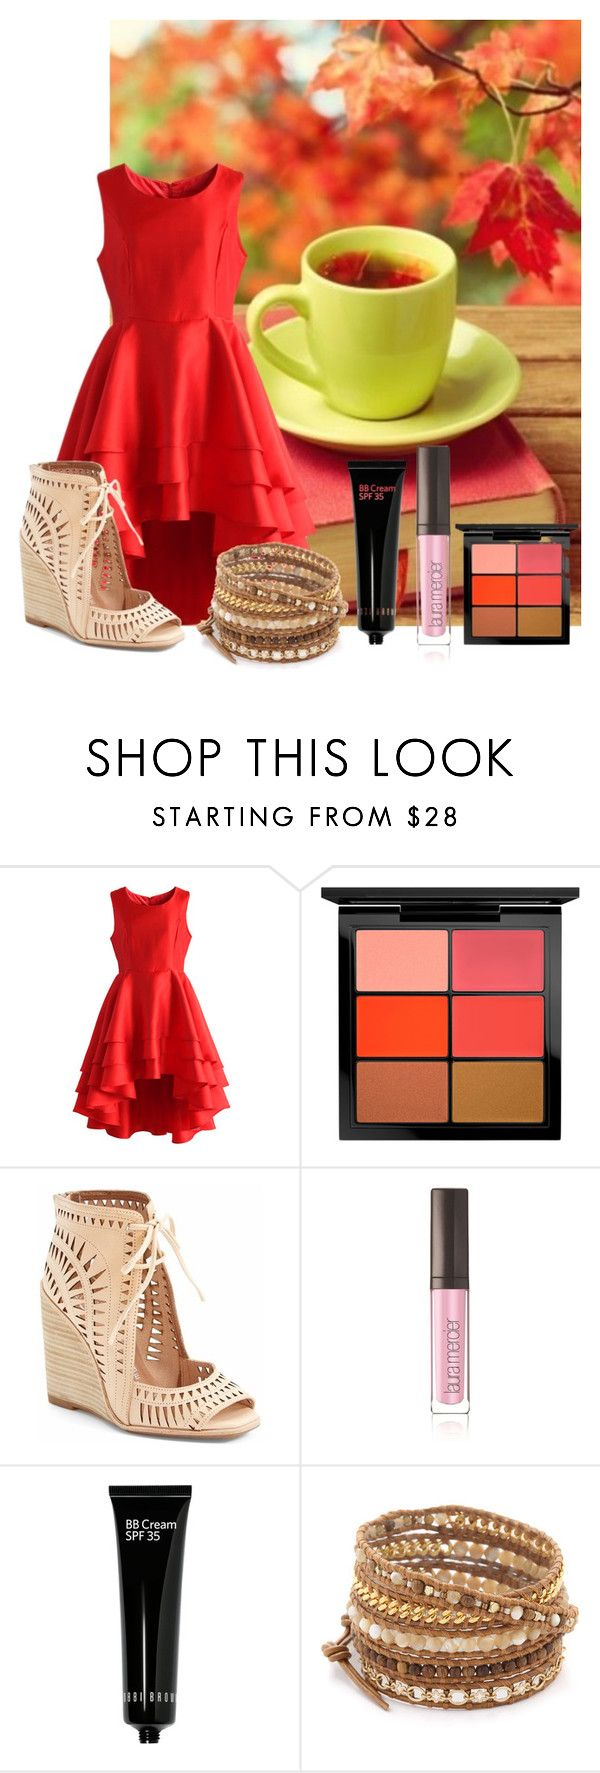 """FIRST Robotics Competition Colorado Regionals"" by rhythmicgoofyworm ❤ liked on Polyvore featuring Chicwish, MAC Cosmetics, Jeffrey Campbell, Laura Mercier, Bobbi Brown Cosmetics and Chan Luu"